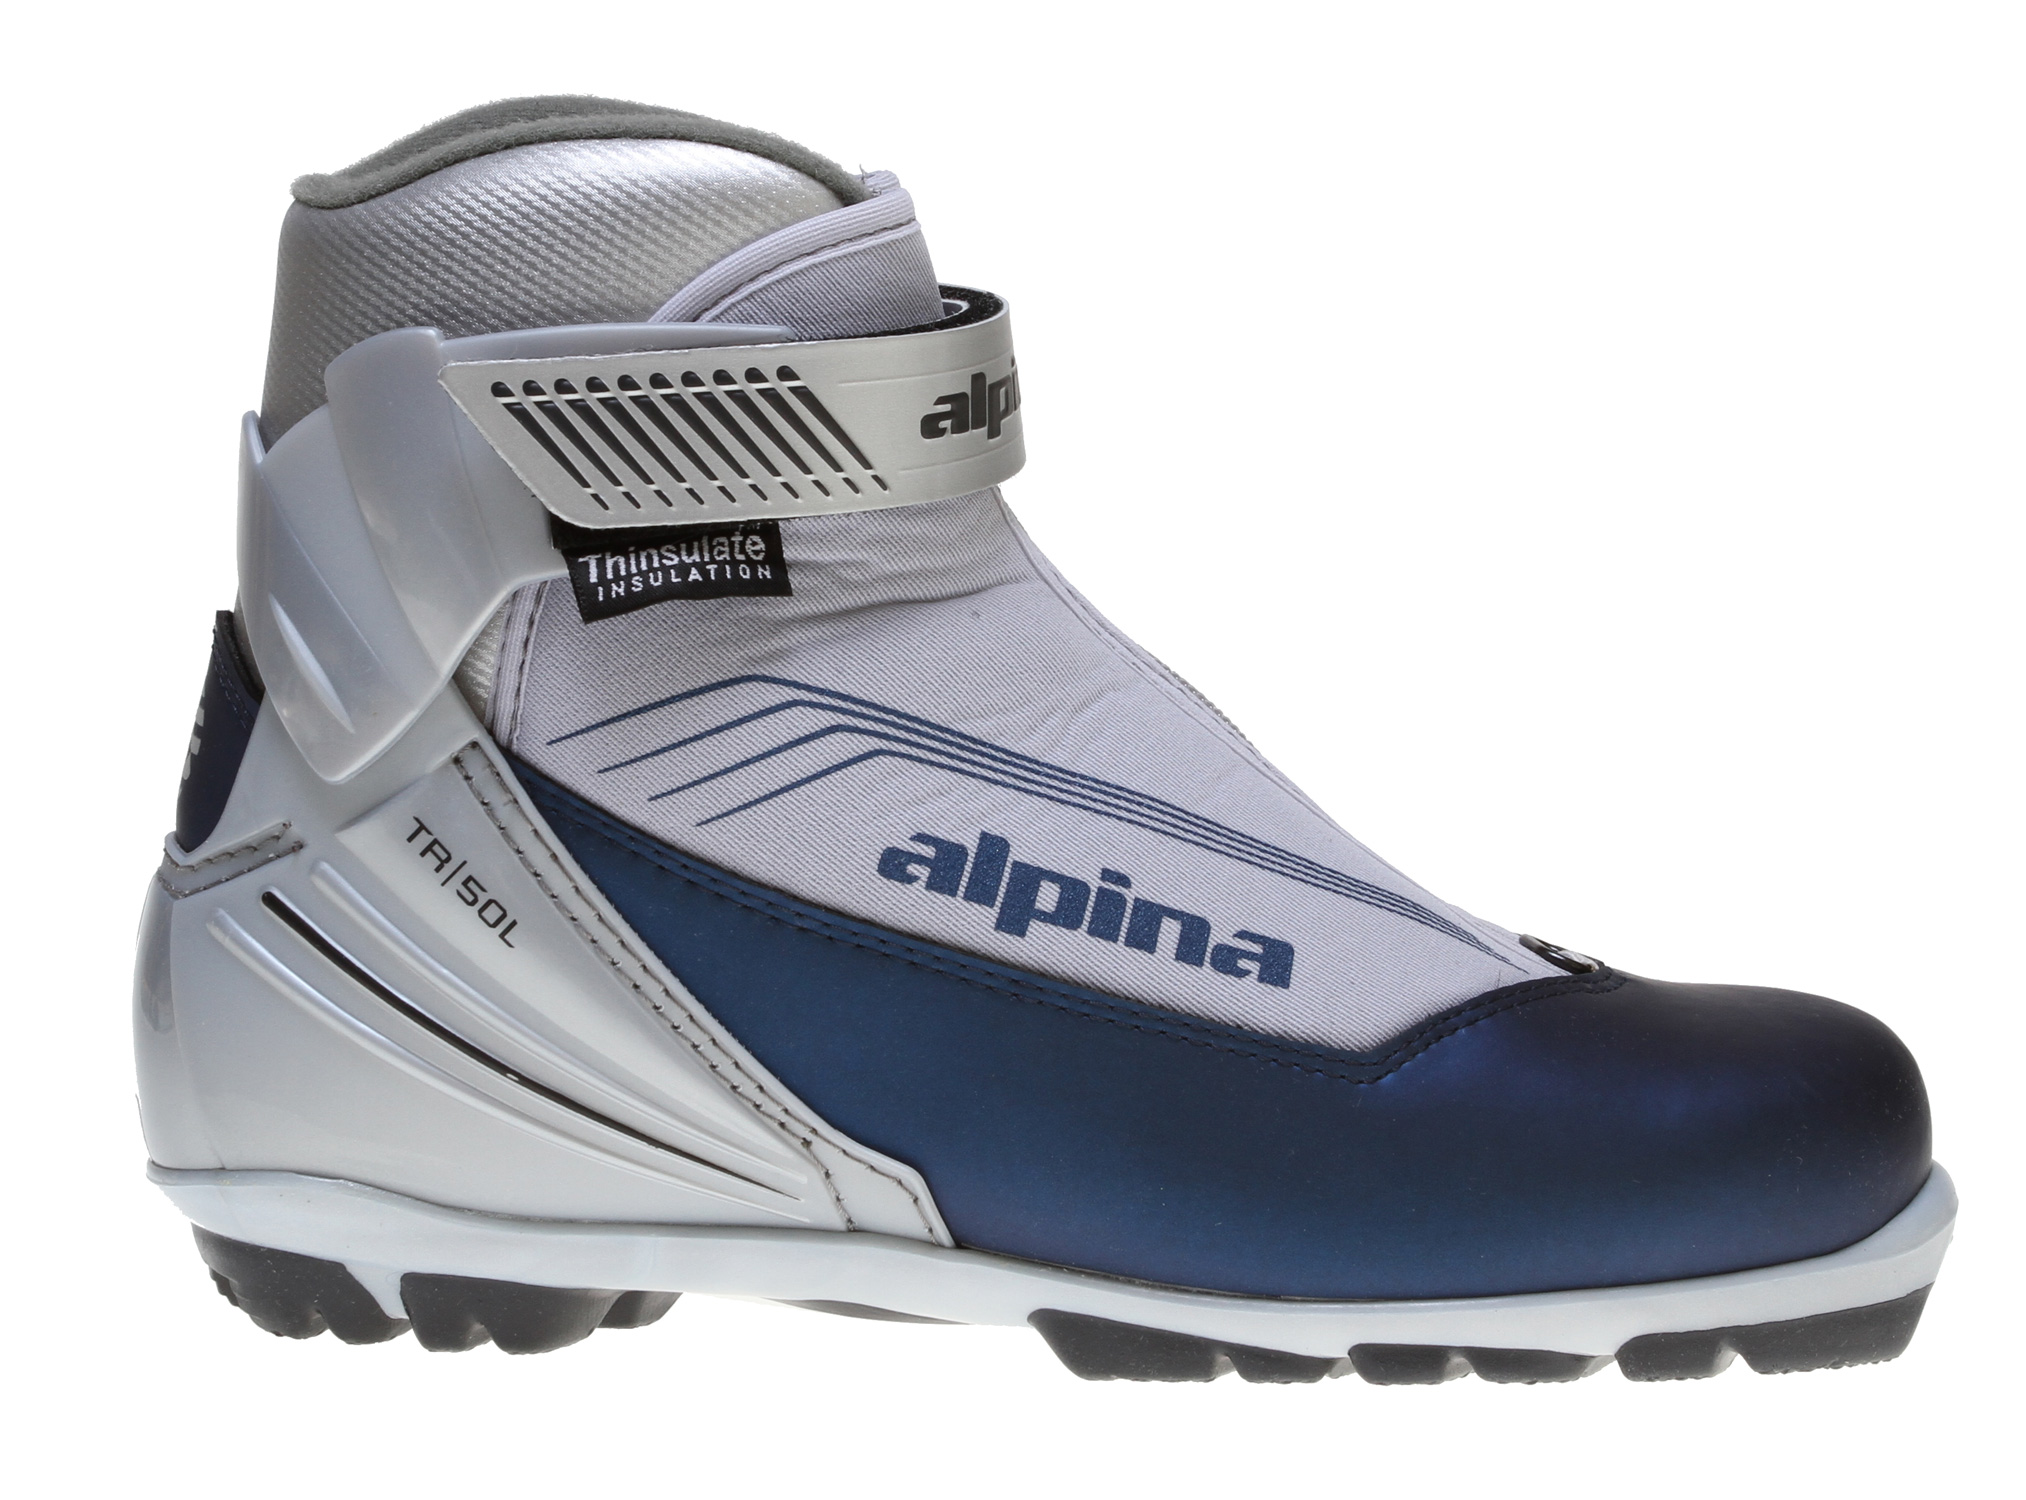 Ski Alpina TR 50L Cross Country Boots have very stylish and attractive synthetic uppers.  These shoes also have Thinsulate insulation in them, which will keep your feet really warm when you're out for hours on a cross country adventures.  In addition to being very warm, the Alpina TR 50L Cross Country Boots have a pivoting ankle support brace that is secured with a hook and loop strap, so your skis will stay attached to your boots and not trip you up!Key Features of the Alpina TR 50L Cross Country Boots:  Synthetic uppers  Thinsulate insulation  Pivoting ankle support brace with hook and loop strap  Water-resistant nylon zip gaiter  Removable cushioned footbed  NNN touring soles - $49.95